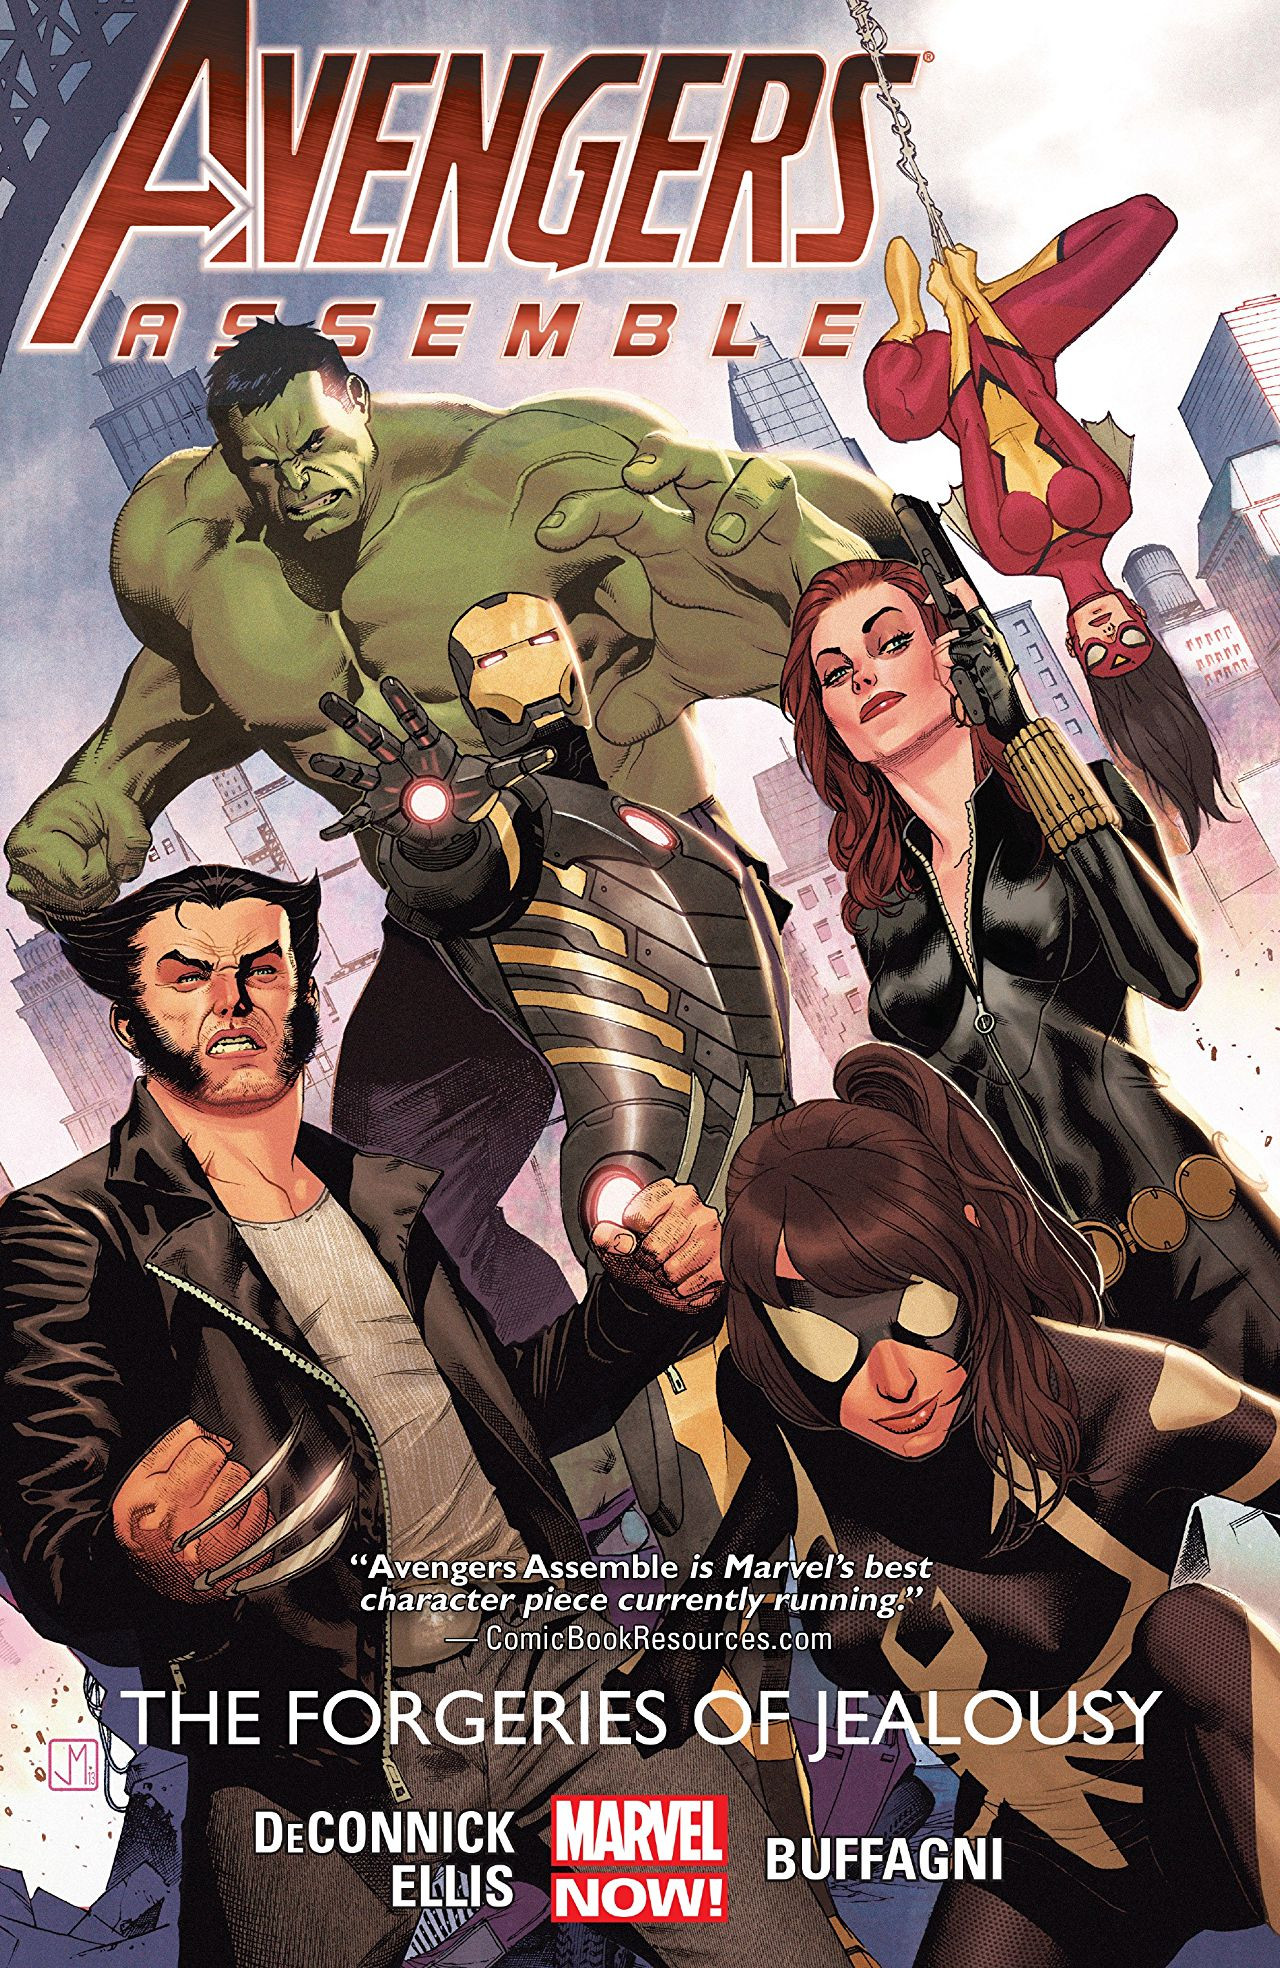 Avengers Assemble: The Forgeries of Jealousy TPB Vol 1 1